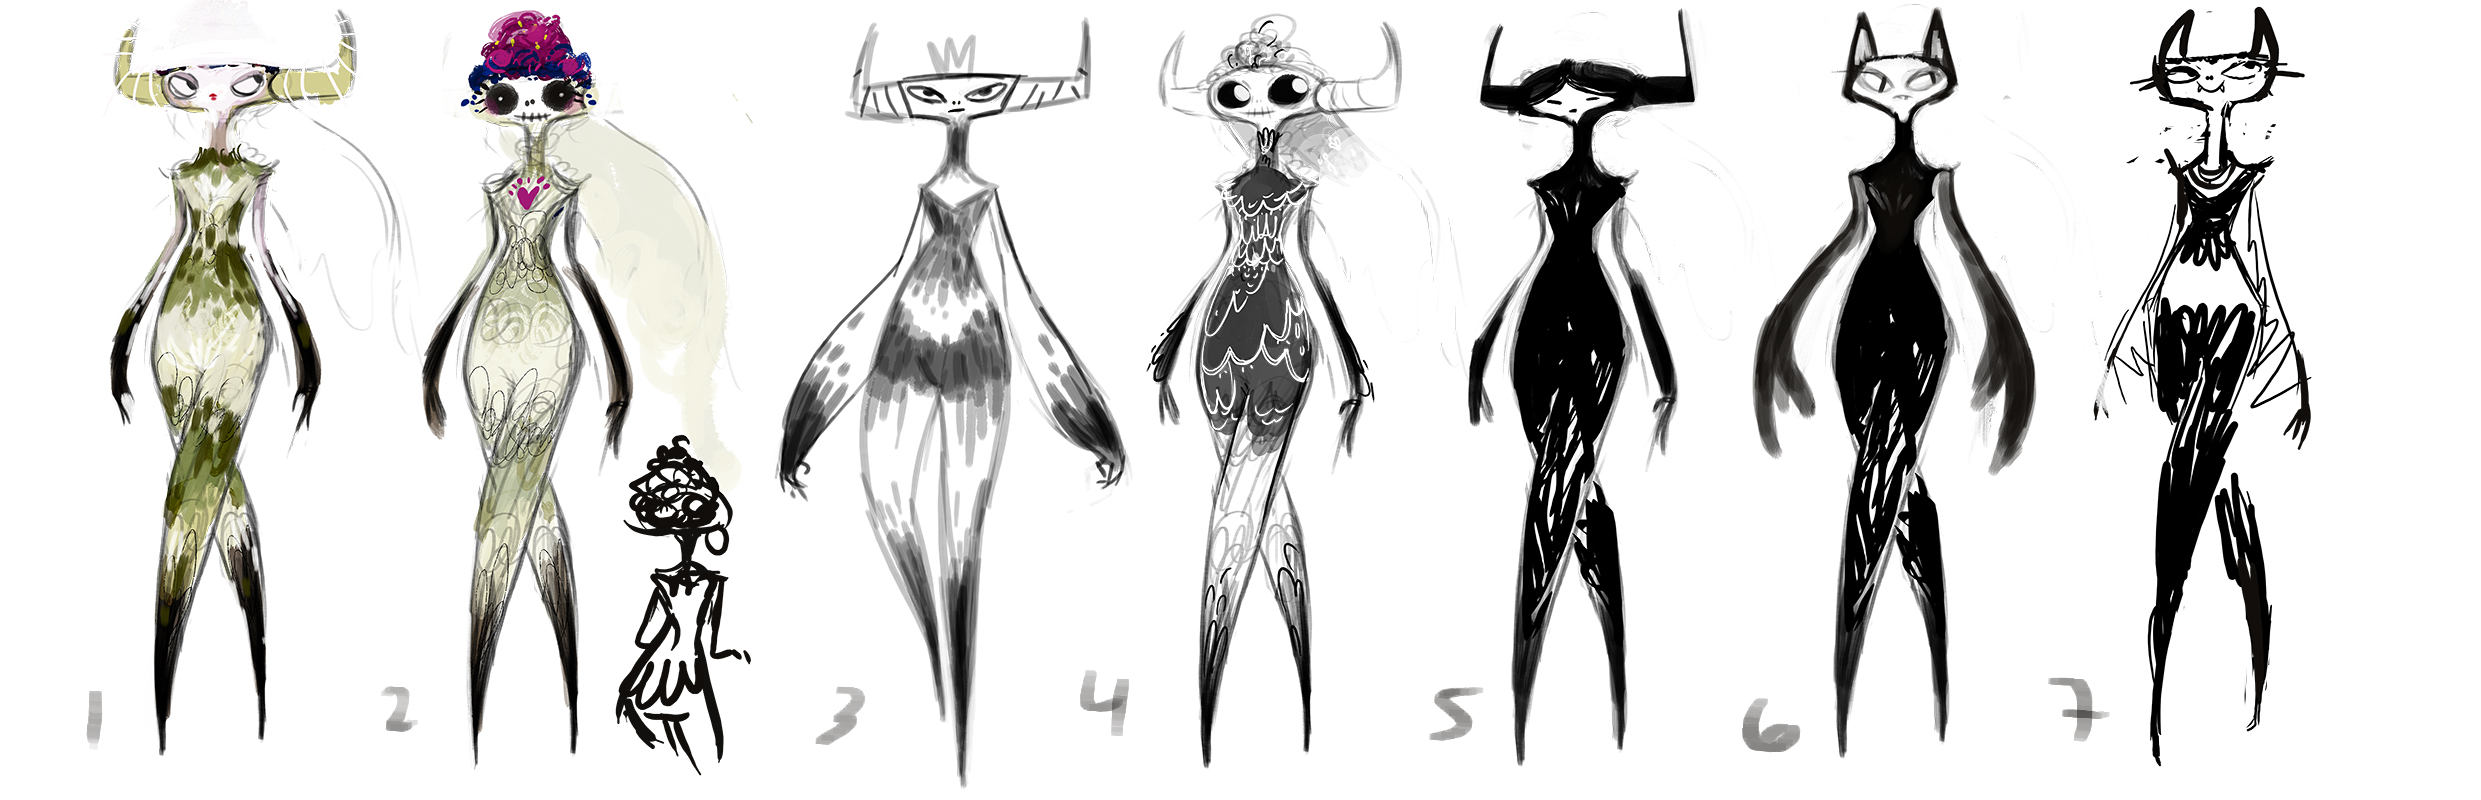 Early groove state concepts for Tina.